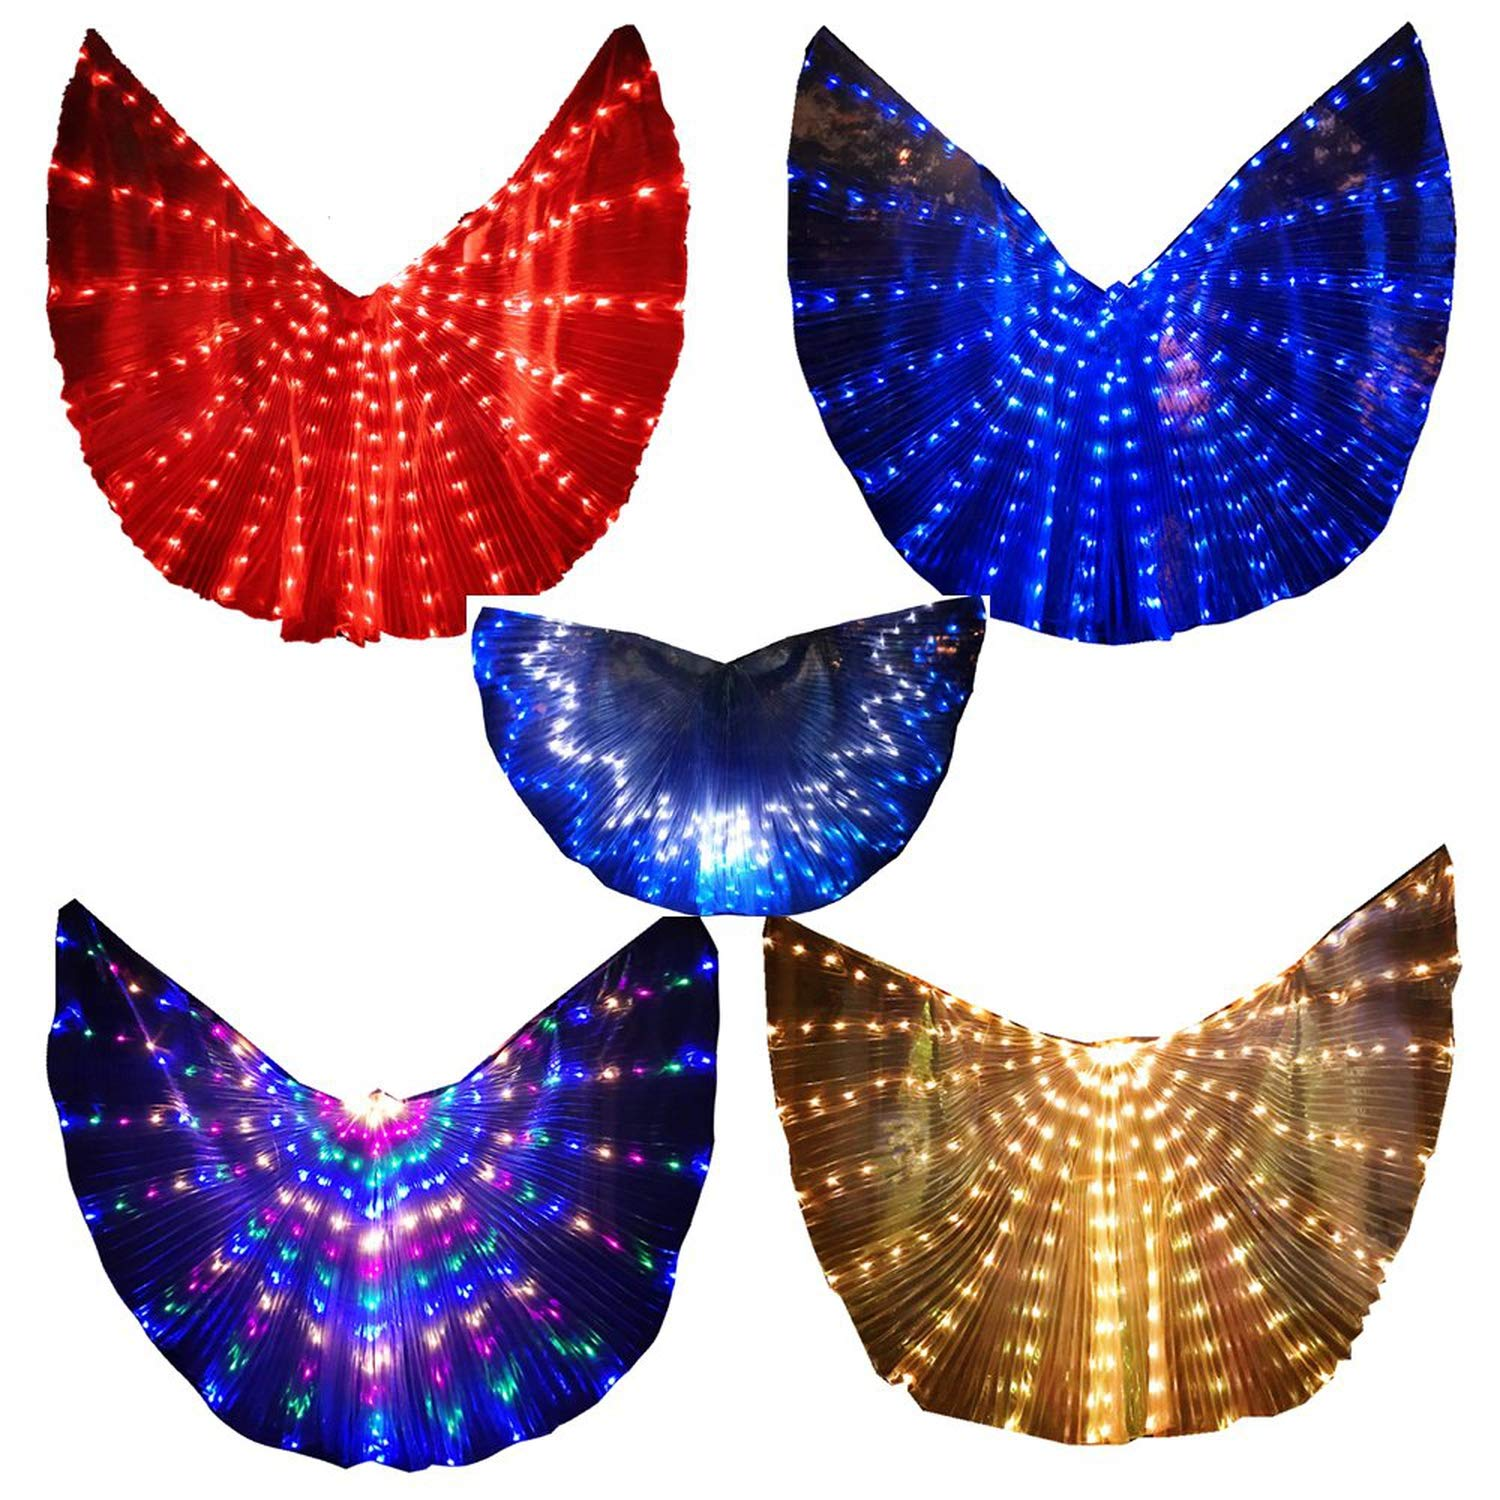 xiaoxiaoland εїз Costume Accessory LED Wings - Belly Dance Light Up Wings Party Club Wear with Flexible Sticks for Women/Girls360degree,Neck,Blue by xiaoxiaoland